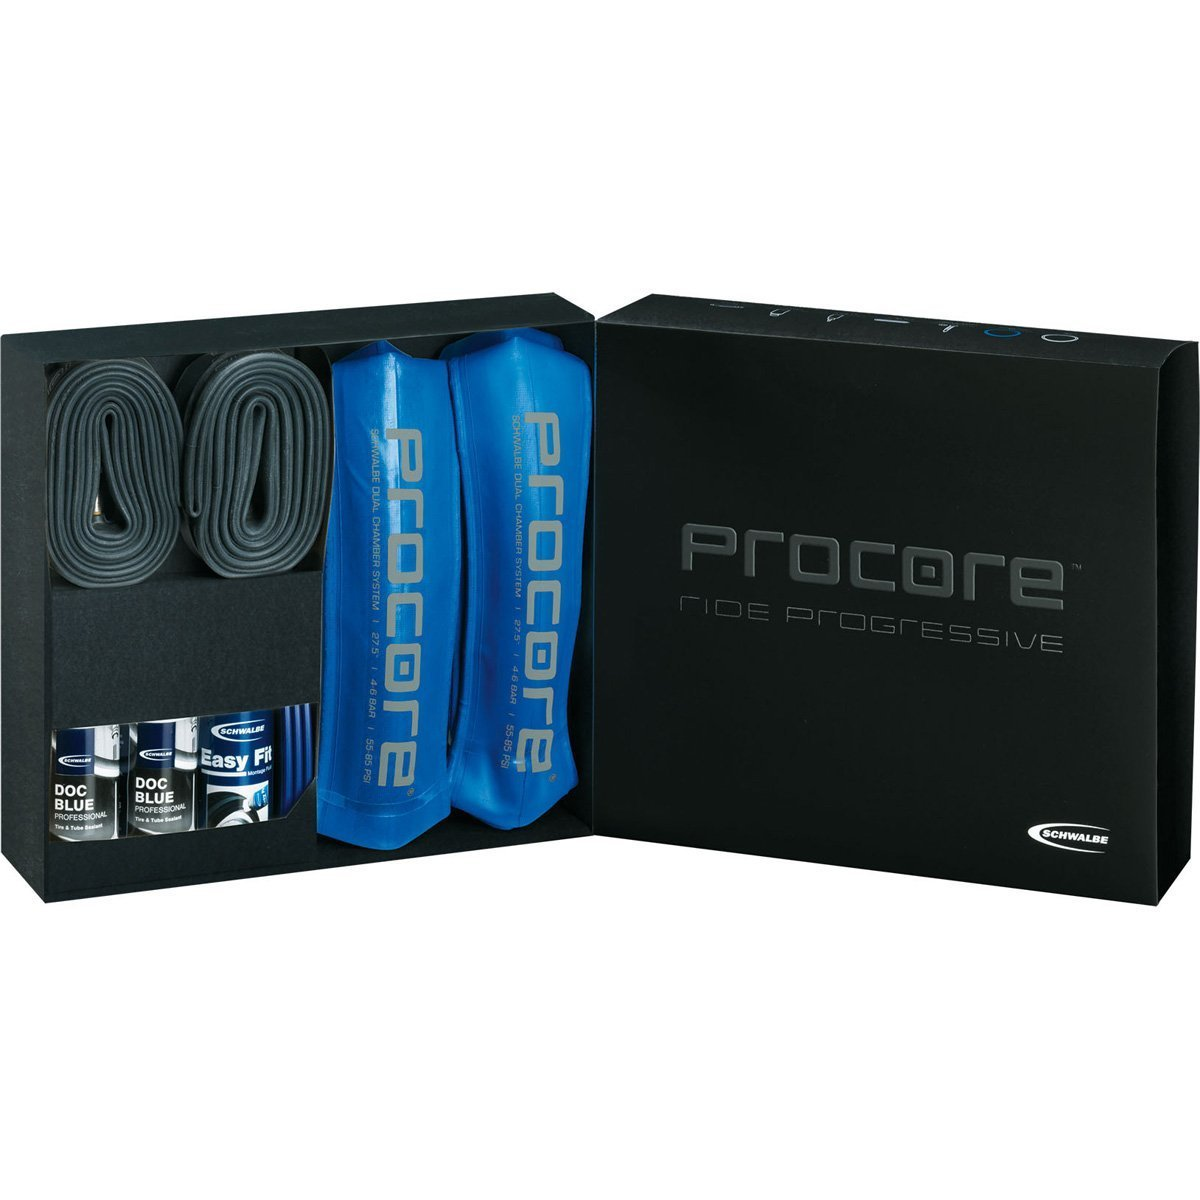 Schwalbe Procore Mountain Bicycle Tube System